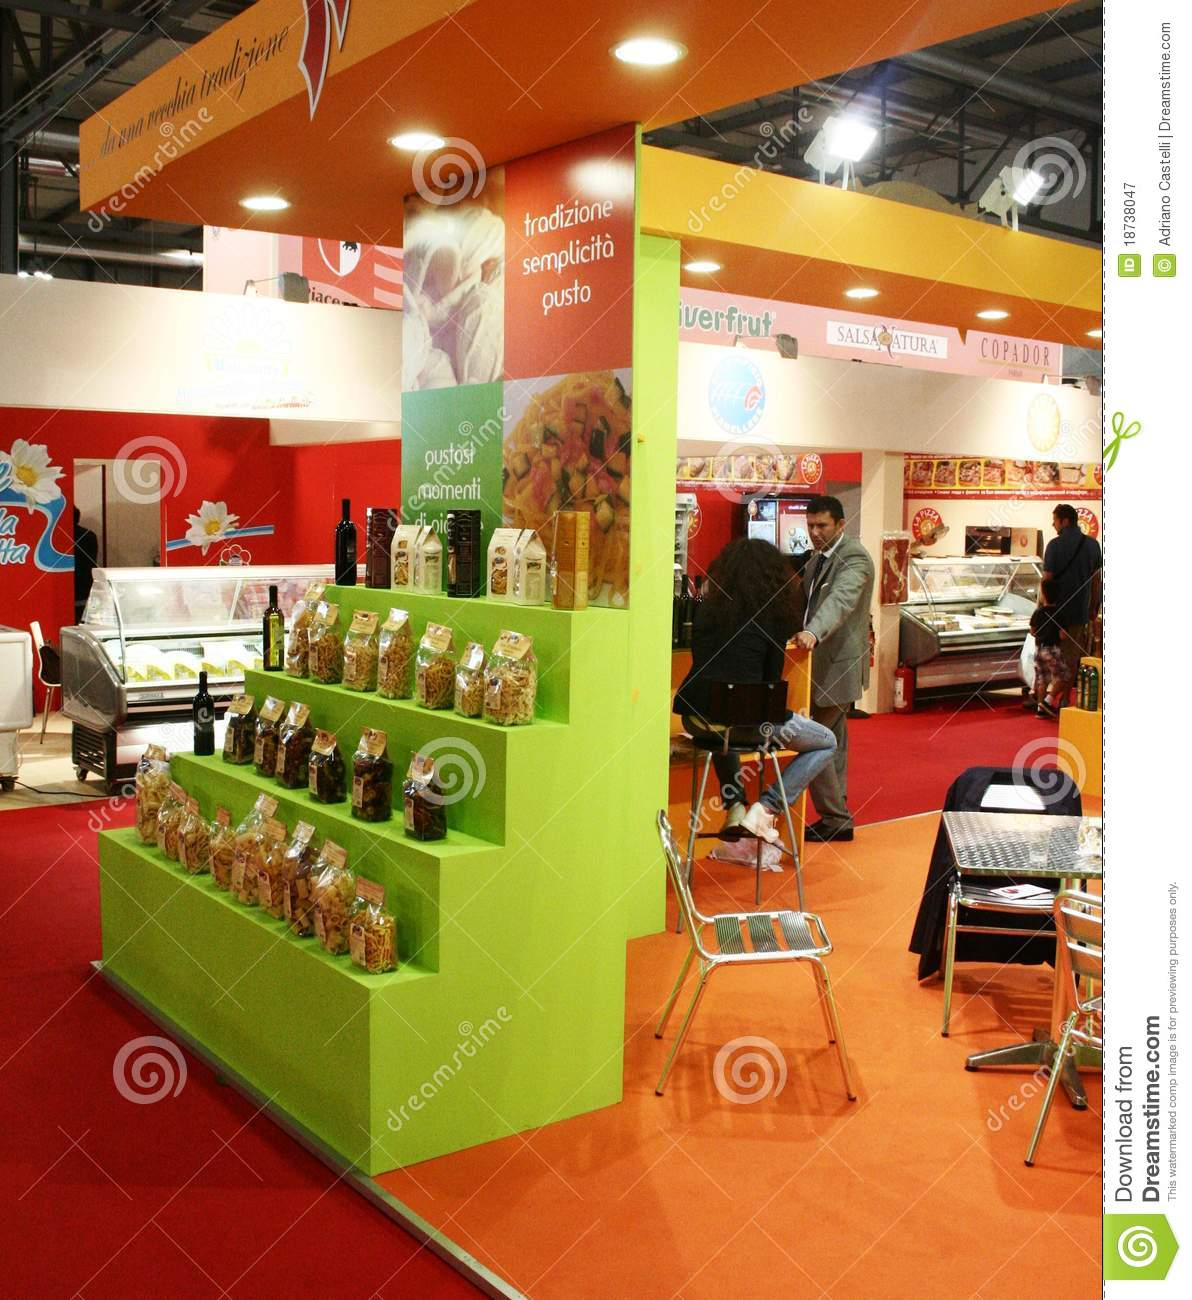 Exhibition Stand Food : Tuttofood milano world food exhibition editorial